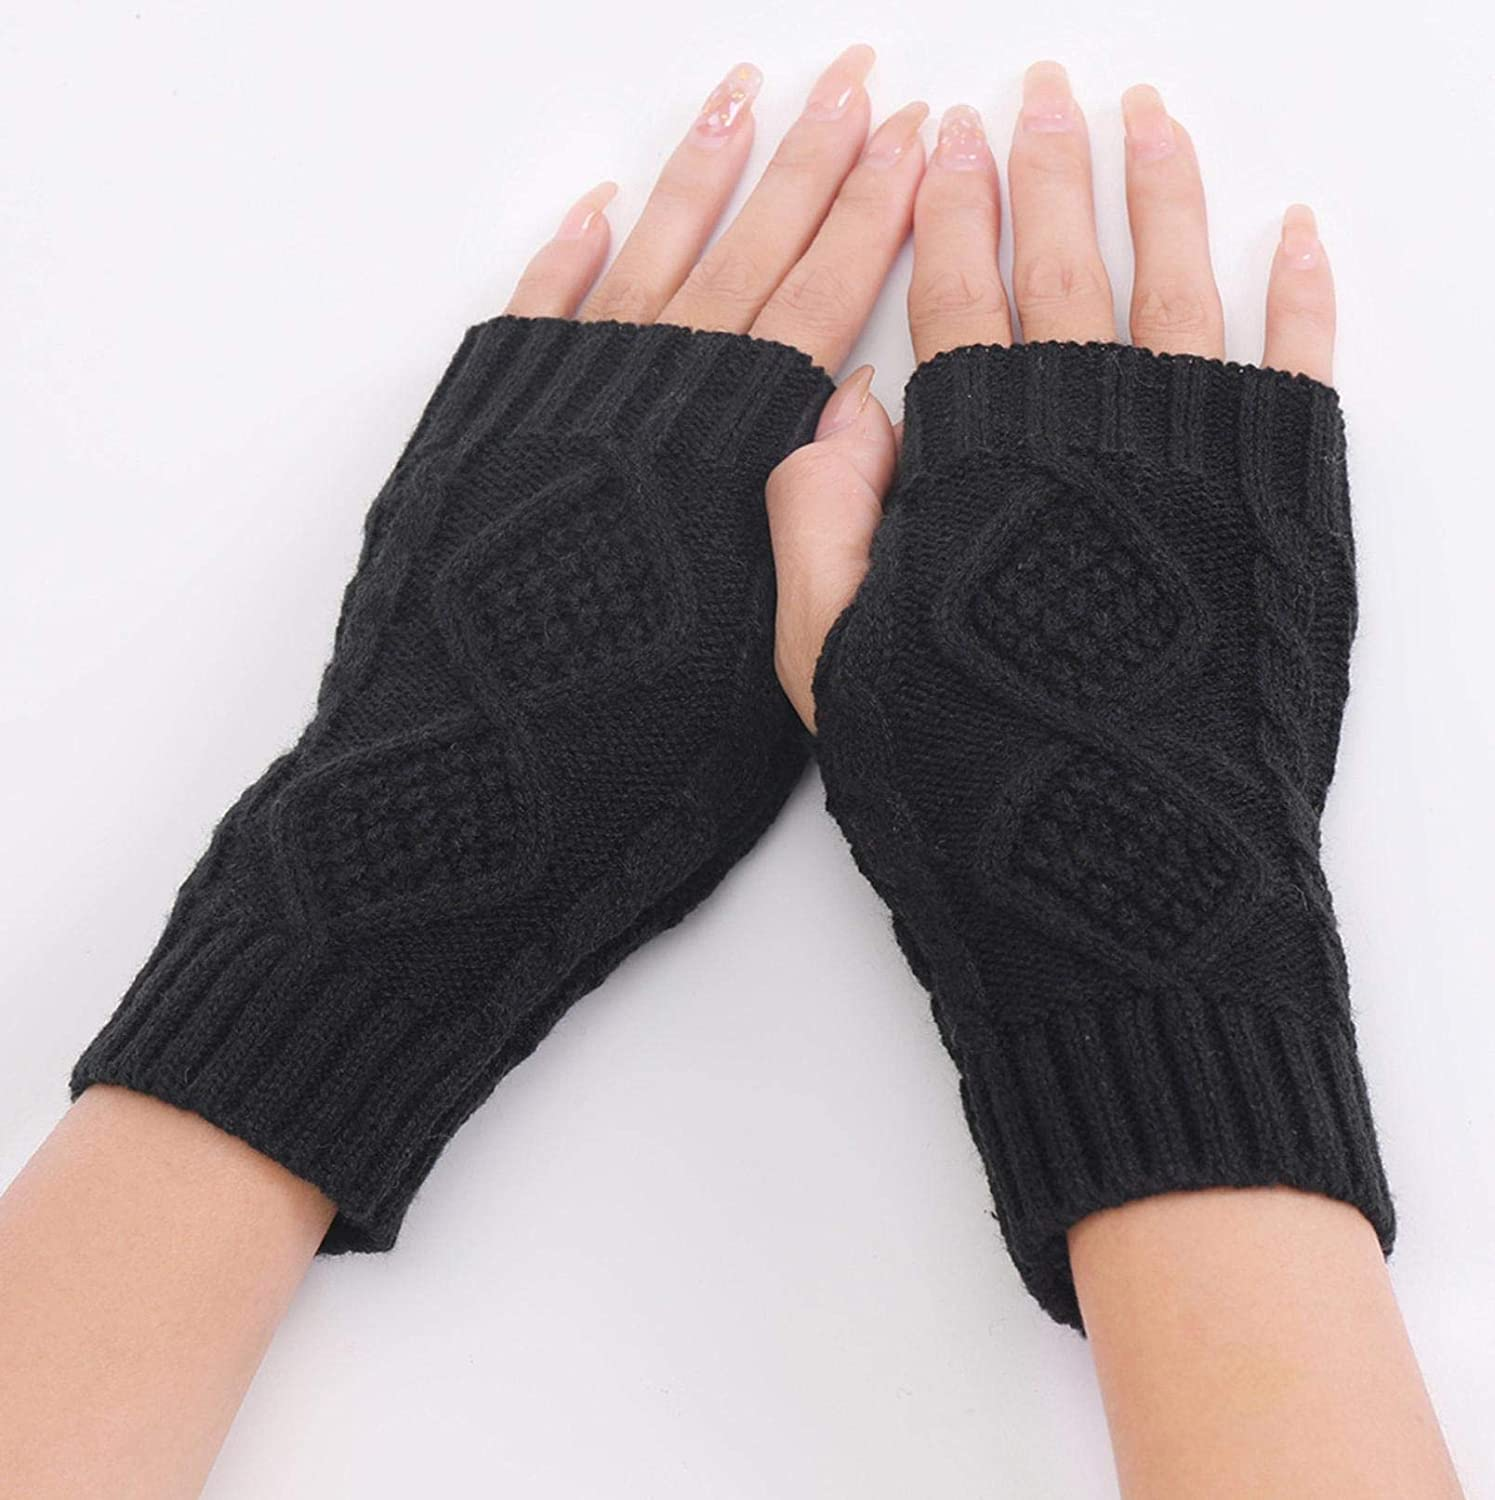 BAOSHU Ladies Winter Warm Thicken Knitted Fingerless Comfortable Stretchable Touch Screen Solid Color Outdoor Gloves (Black)